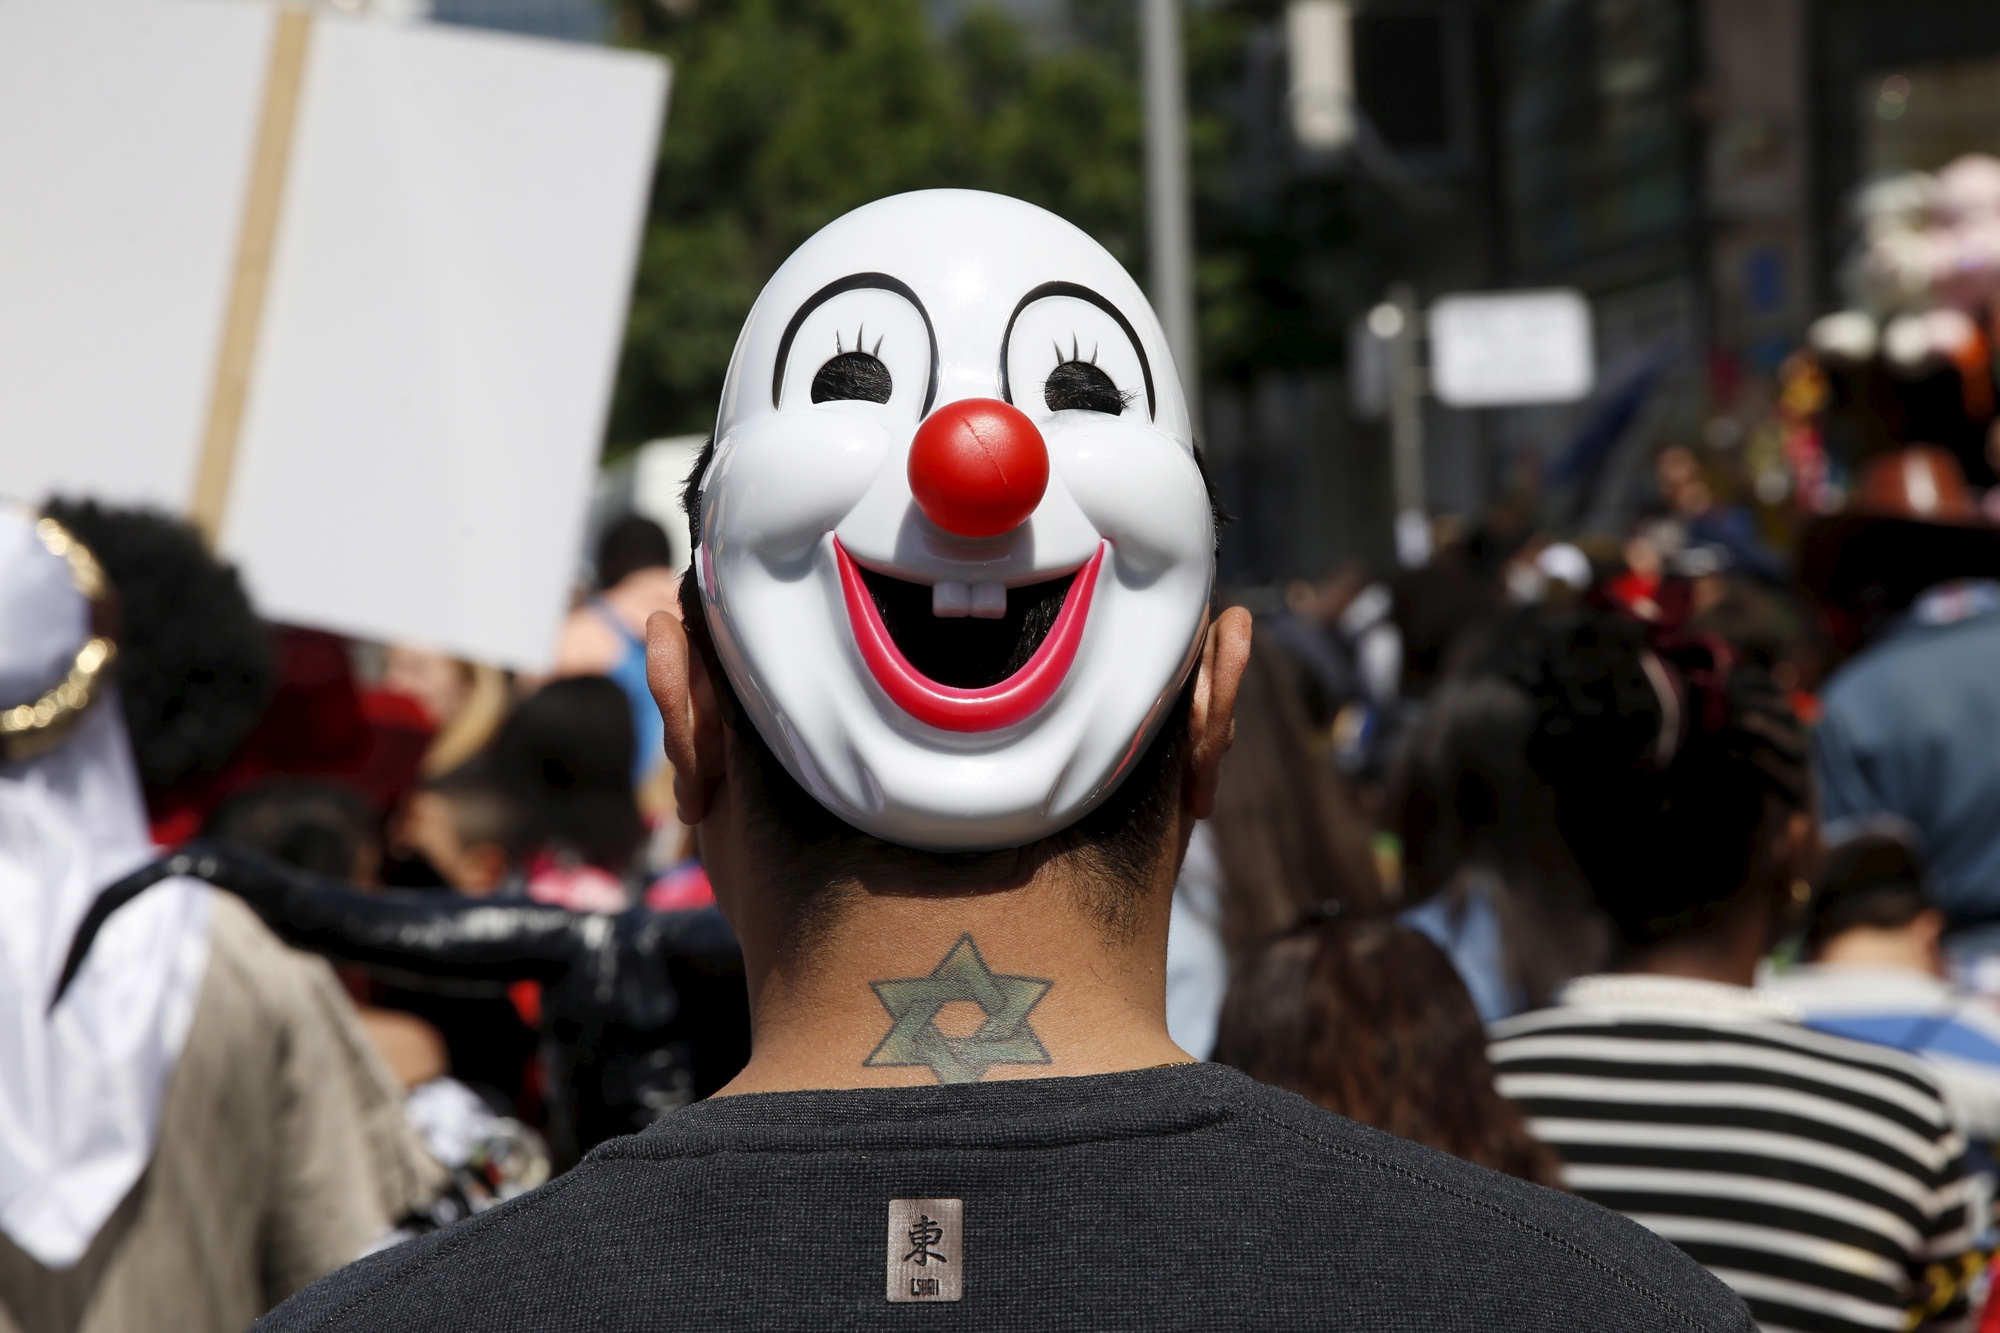 A man wearing a mask takes part in a parade marking the upcoming Jewish holiday of Purim outside the Bialik Rogozin school in Tel Aviv, Israel